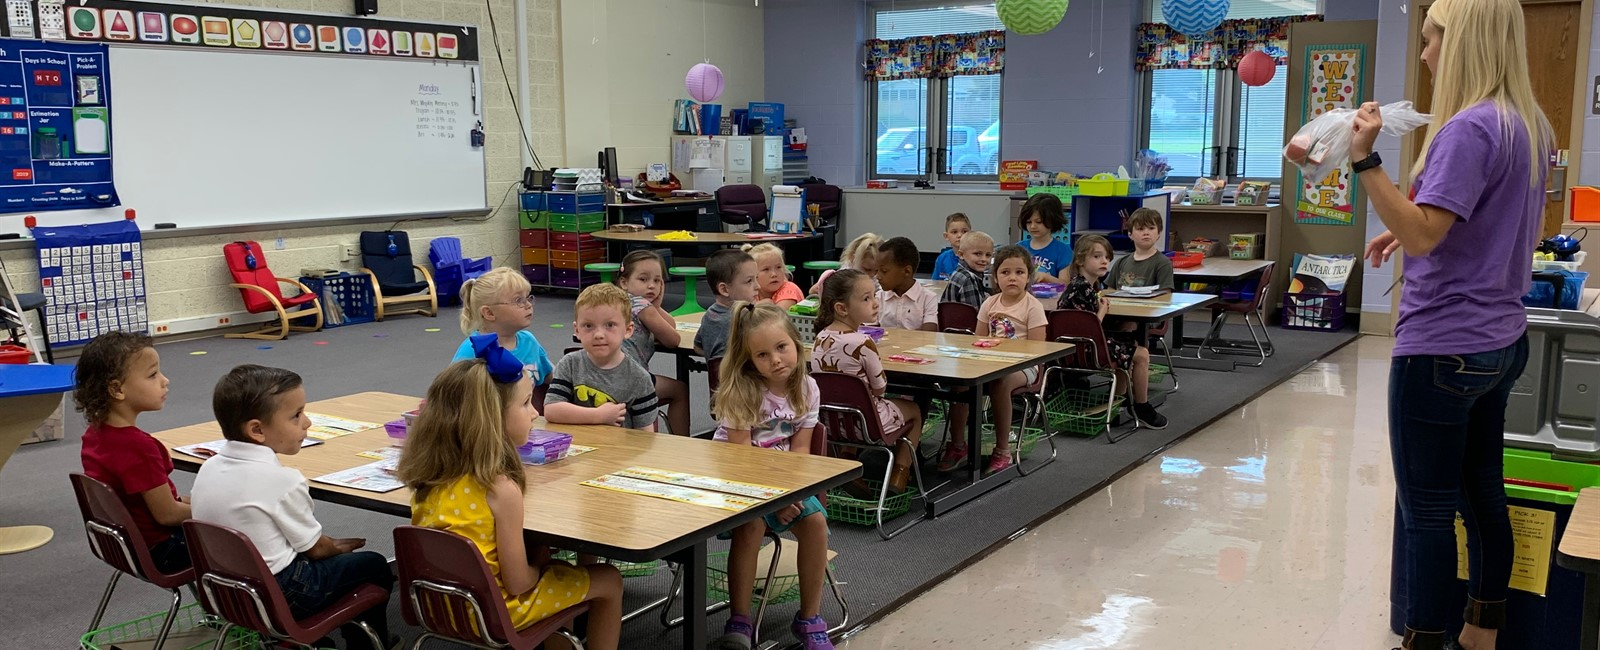 Our elementary students are ready to learn and looking forward to the 2019-2020 school year!